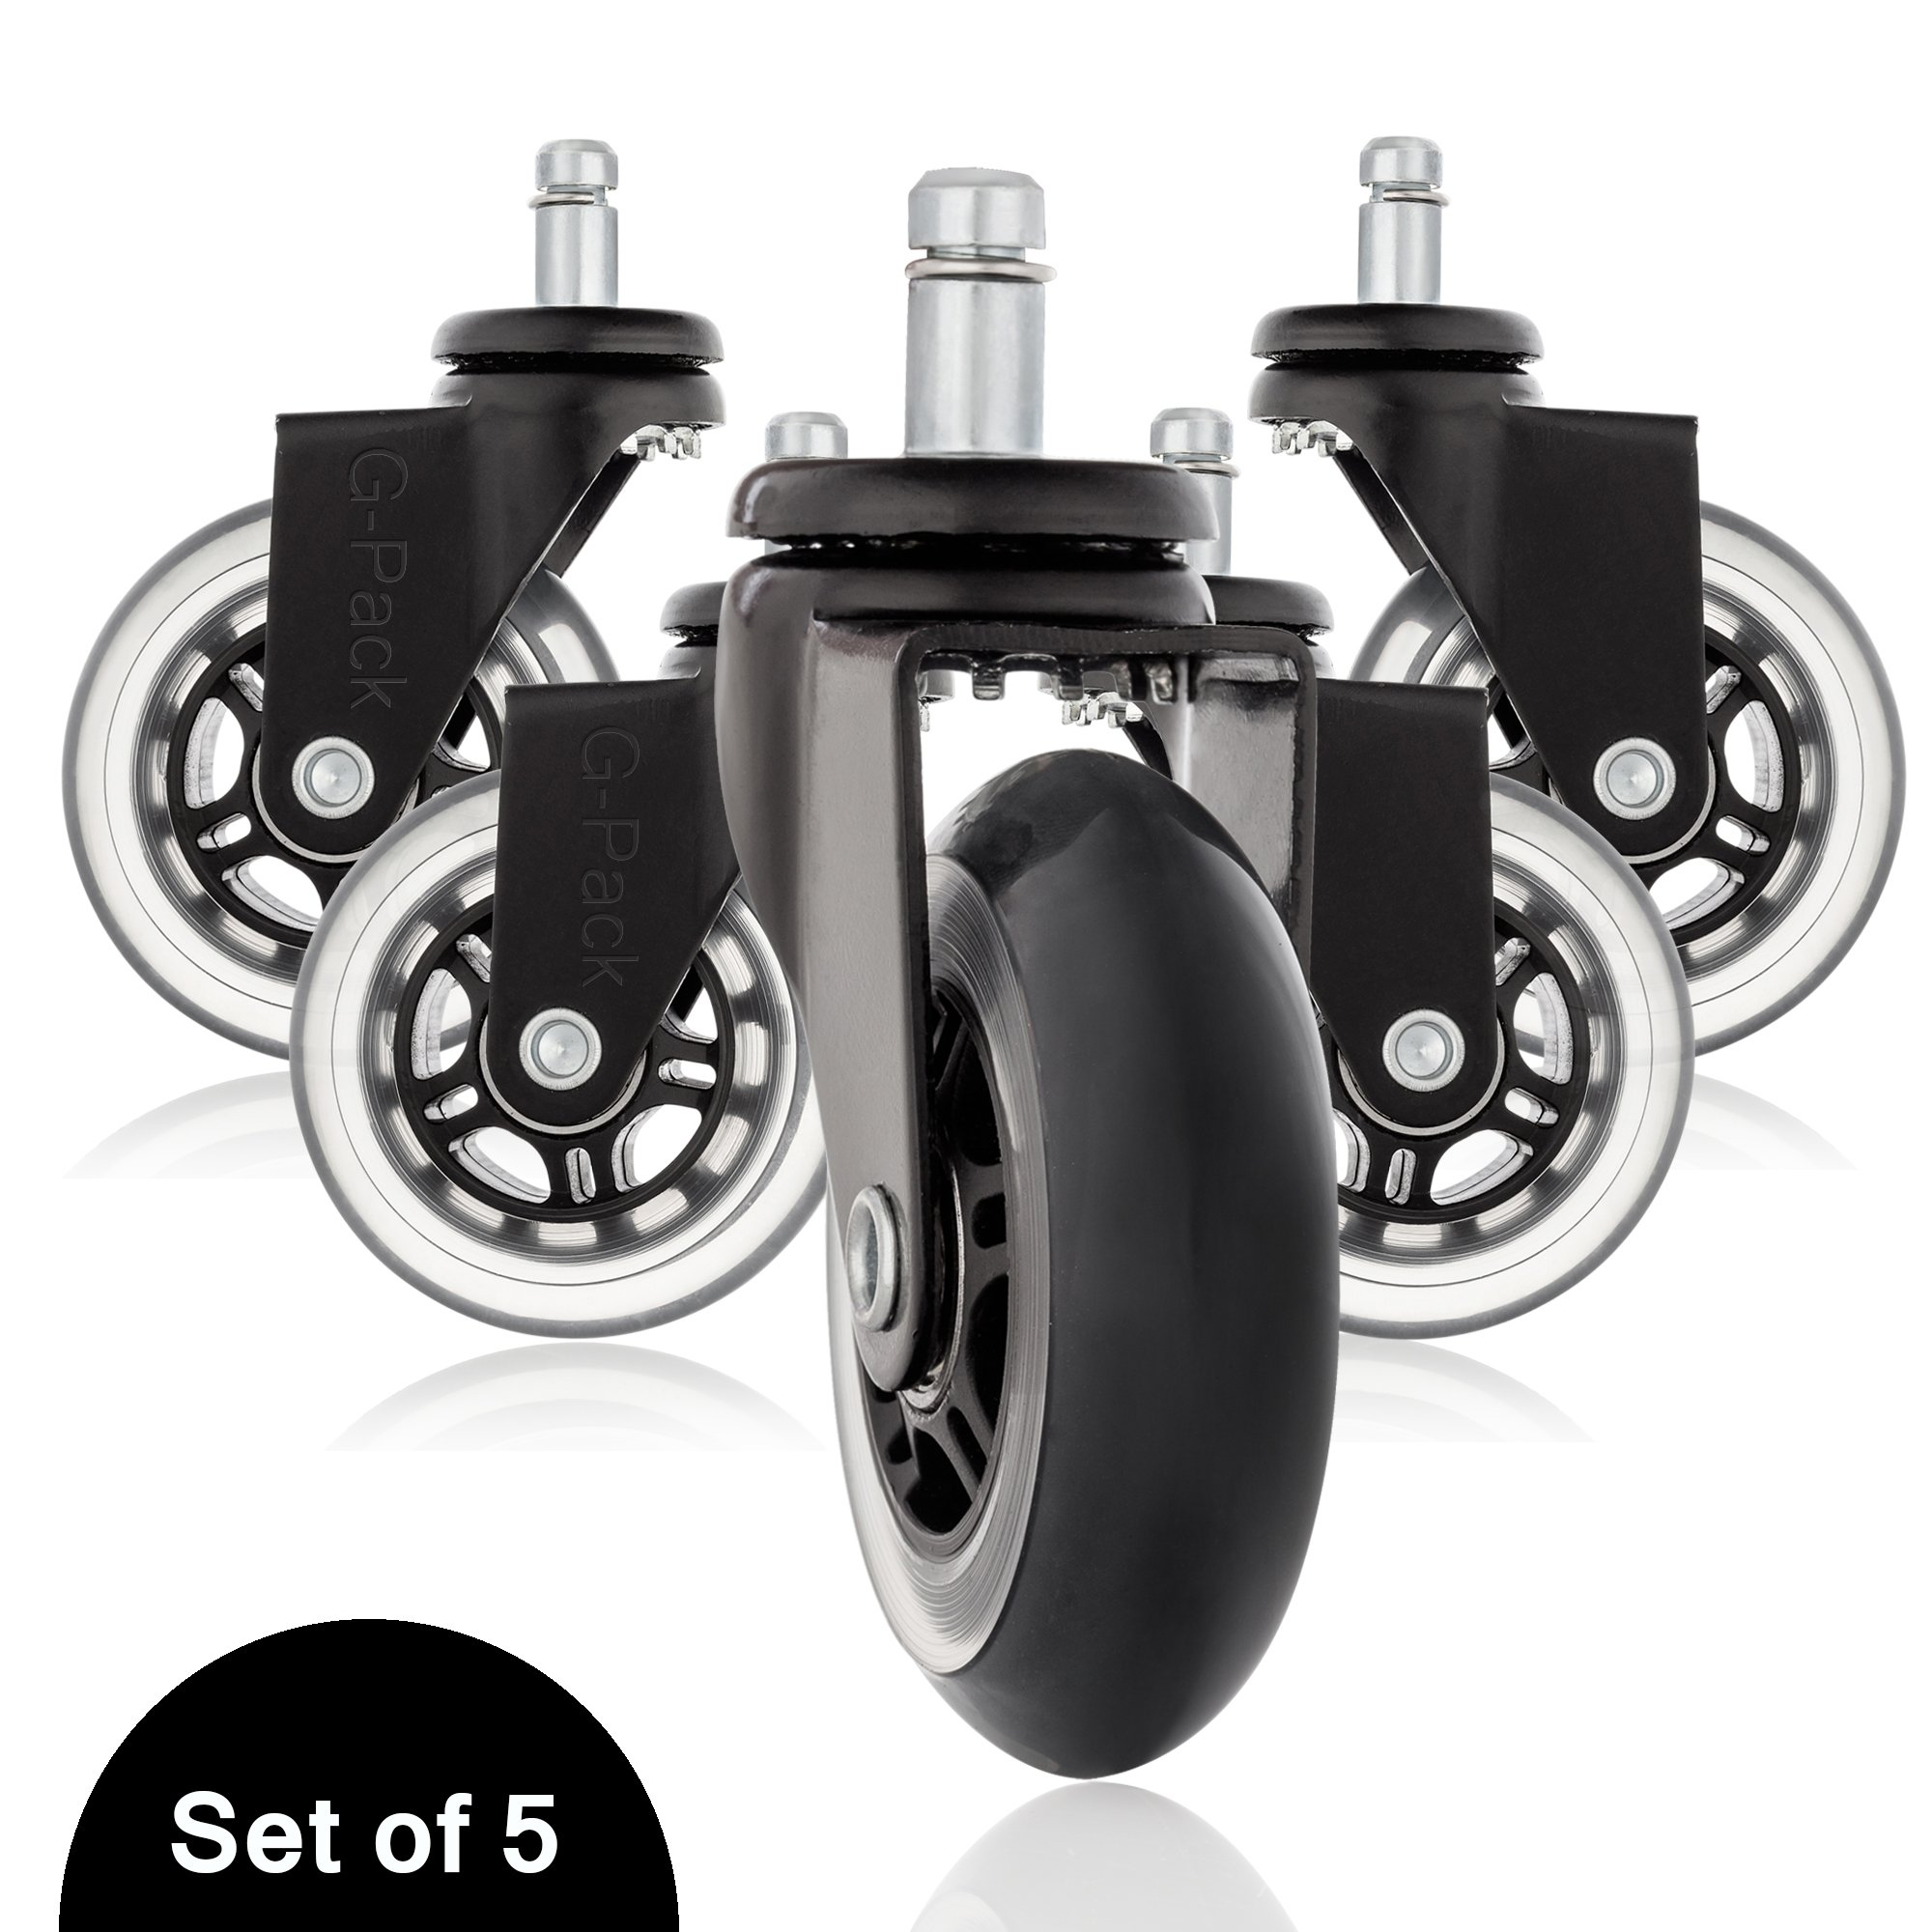 Office Desk Chair Replacement Caster Wheels Set, Heavy Duty Construction Protects Hardwood Floors & Carpets From Damage, 650lbs Capacity Smooth Rolling & Whisper Quiet Operation - Pack Of 5 (Black)